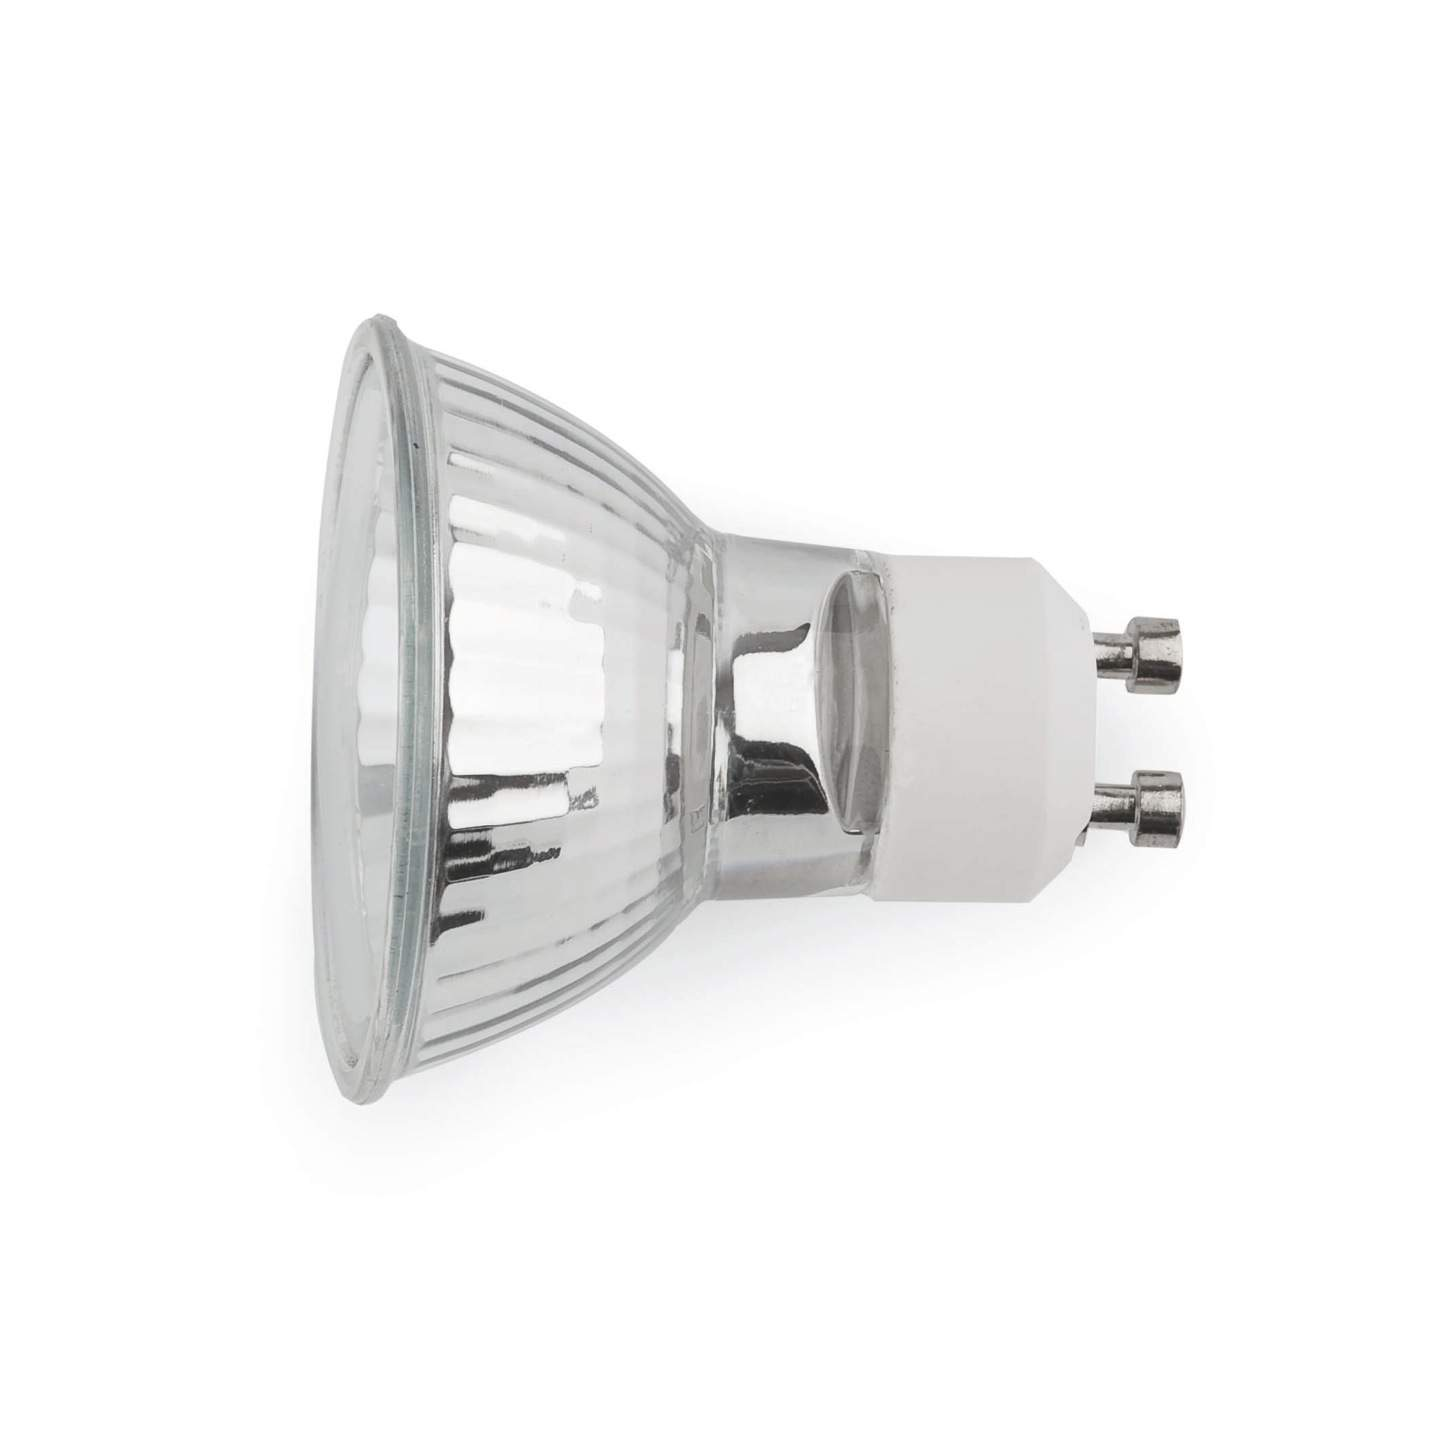 Bombilla Halogen GU10 35w Eco 700 Cd 38ª 2800K